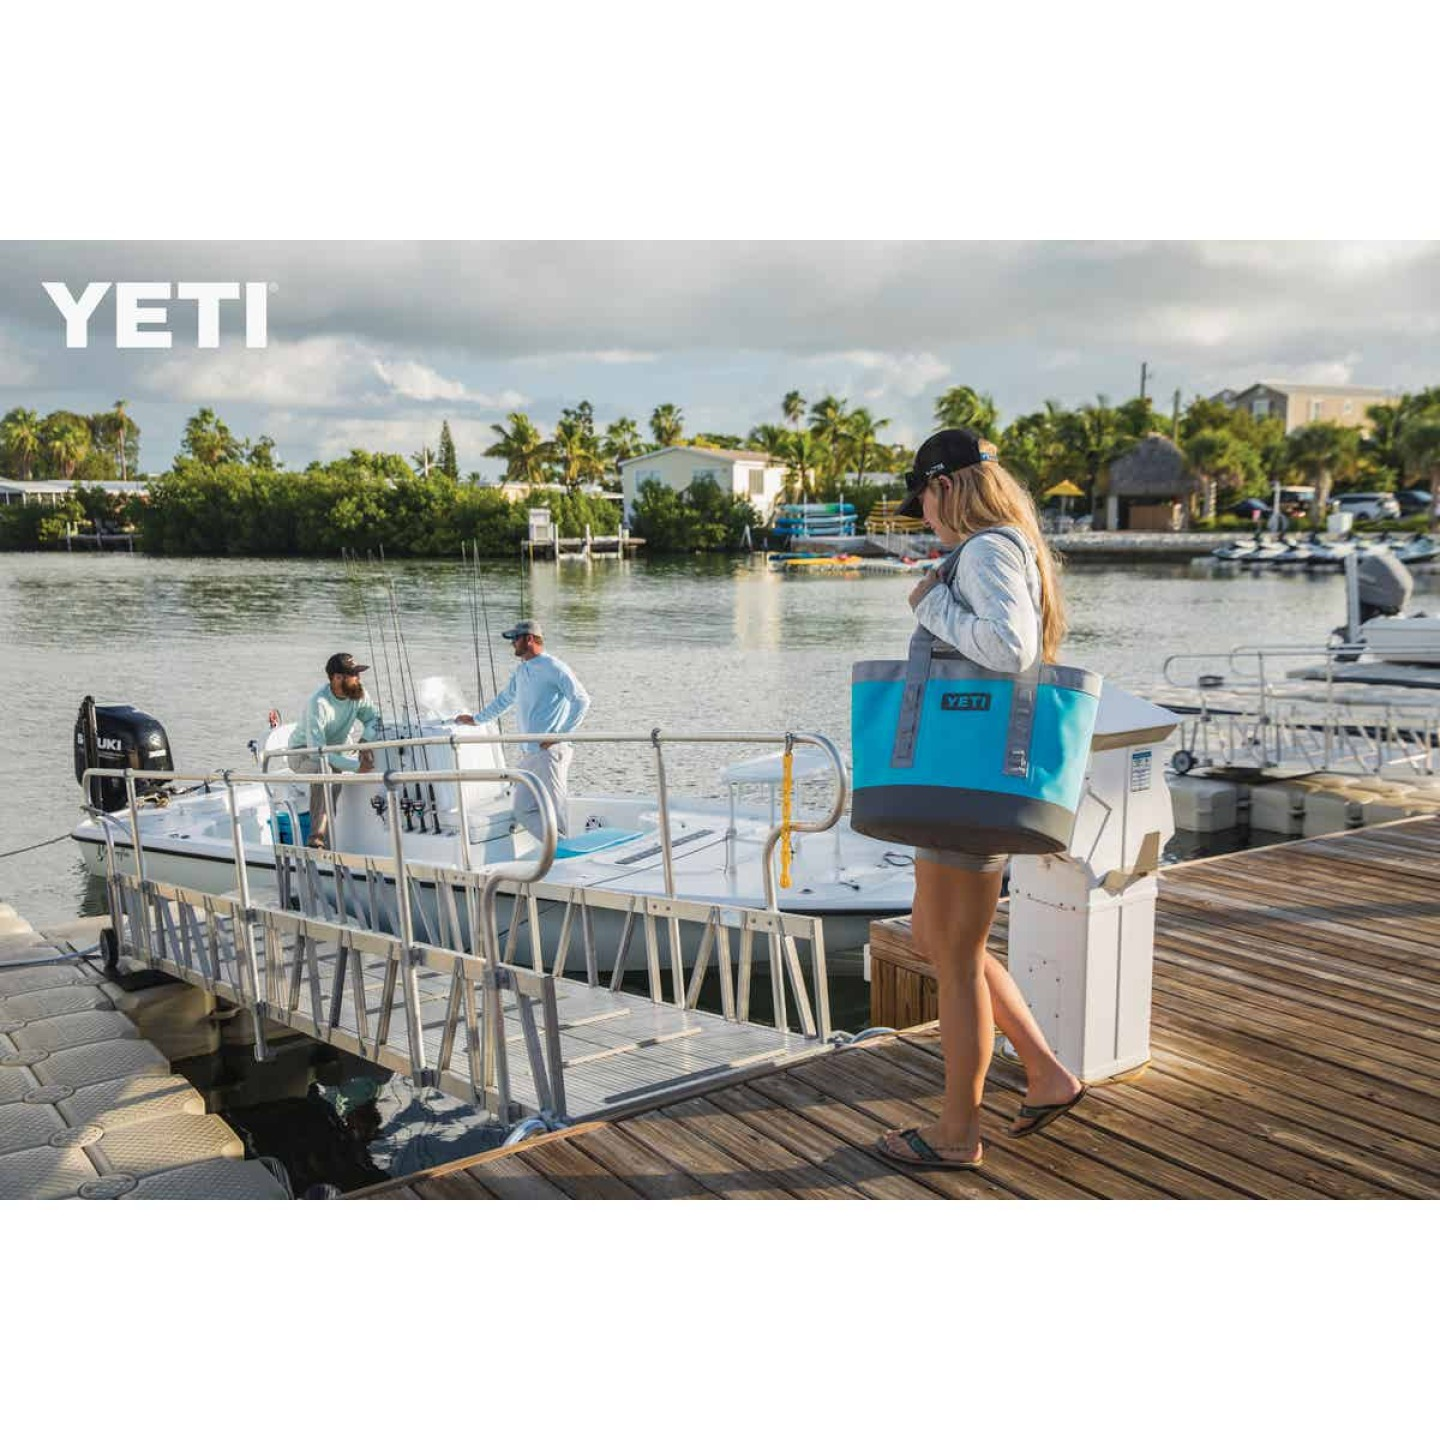 Yeti Camino Carryall 35 9.84 In. W. x 14.97 In. H. x 18.11 In. L. Reef Blue Tote Bag Image 2